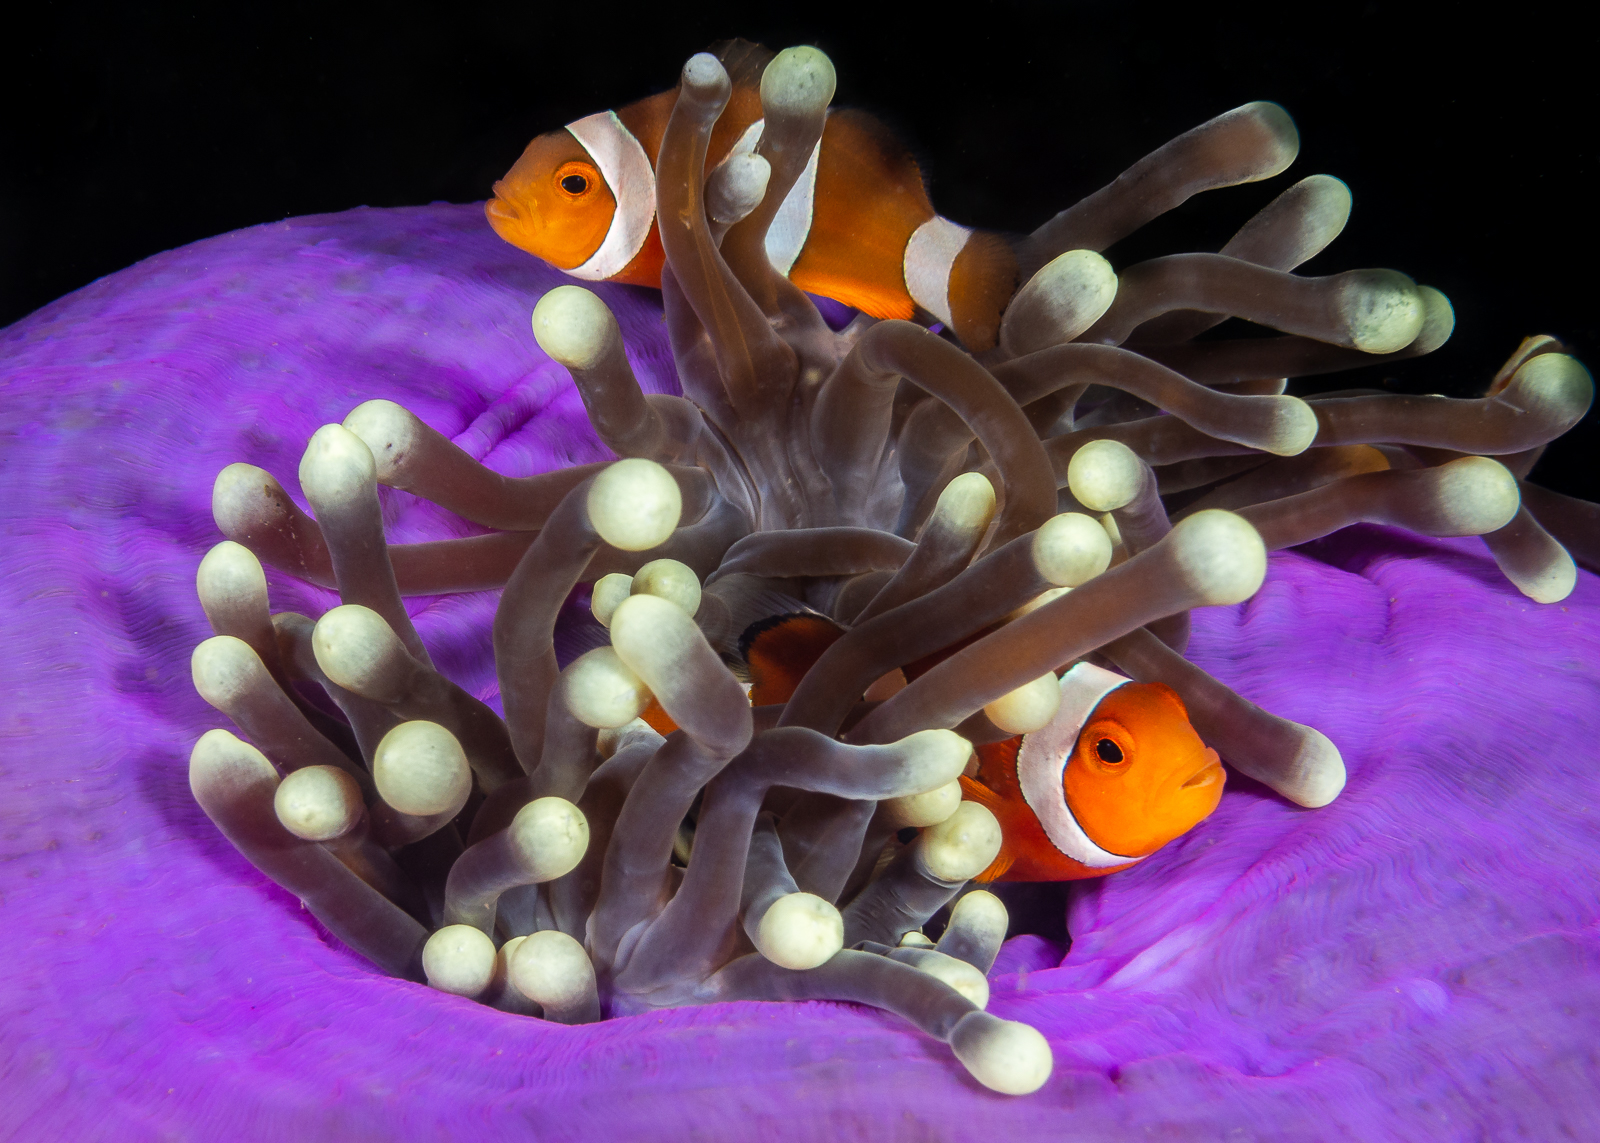 Clownfish and purple anemone